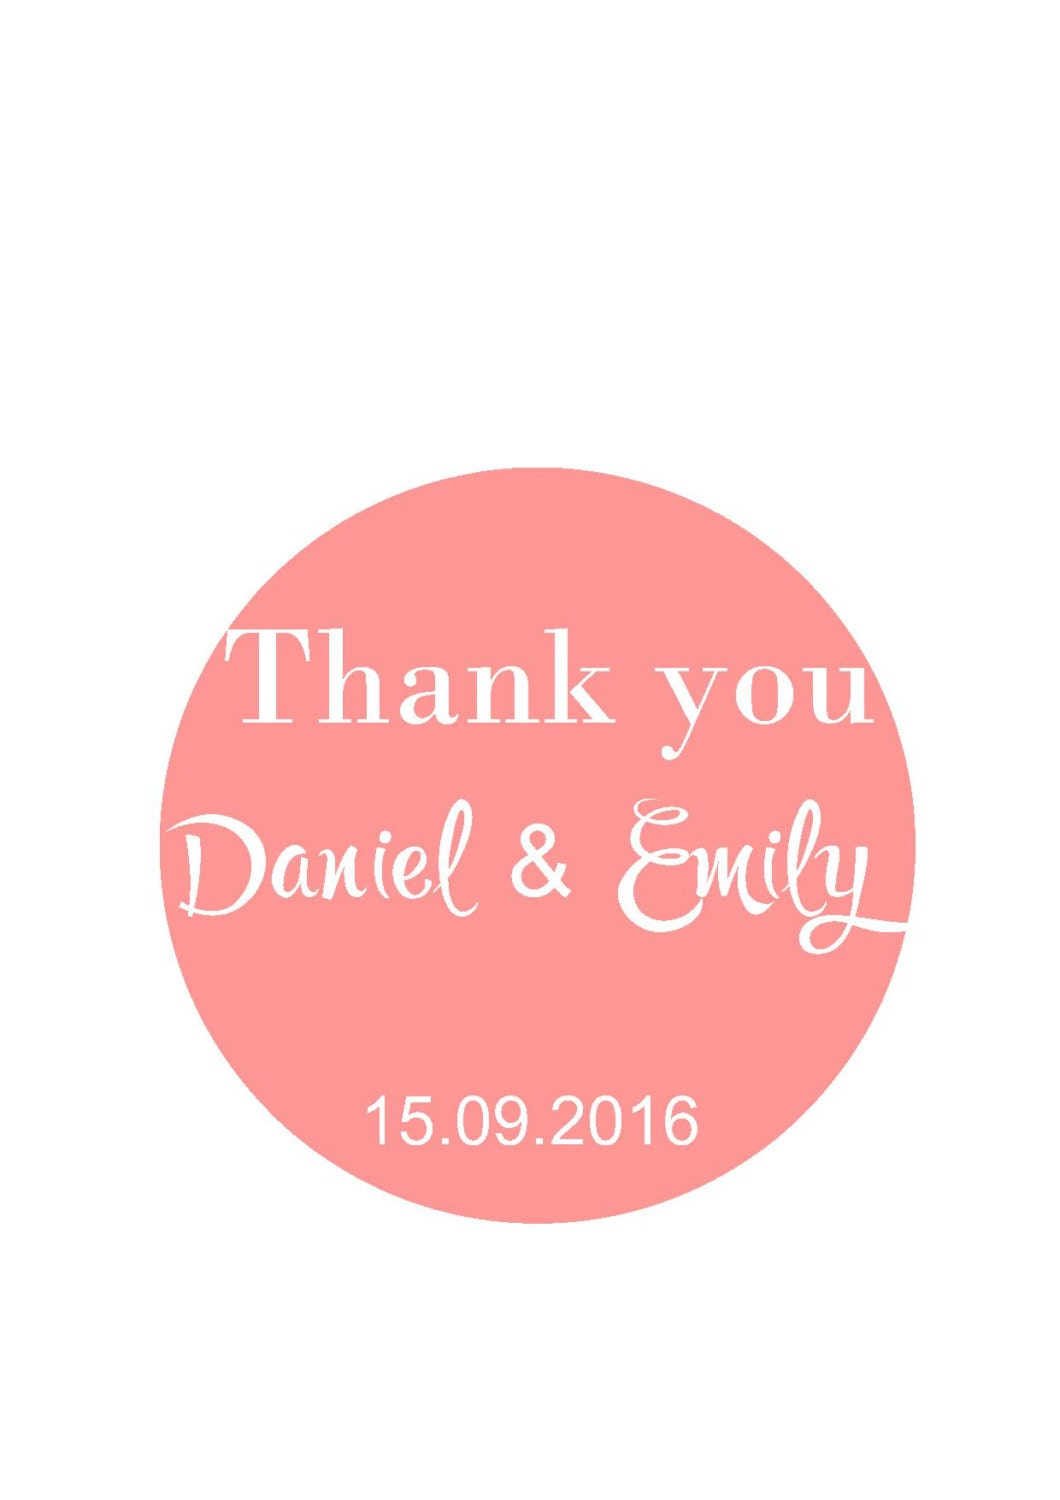 Personalized Stickers Wedding Stickers Wedding Favor Labels   Etsy